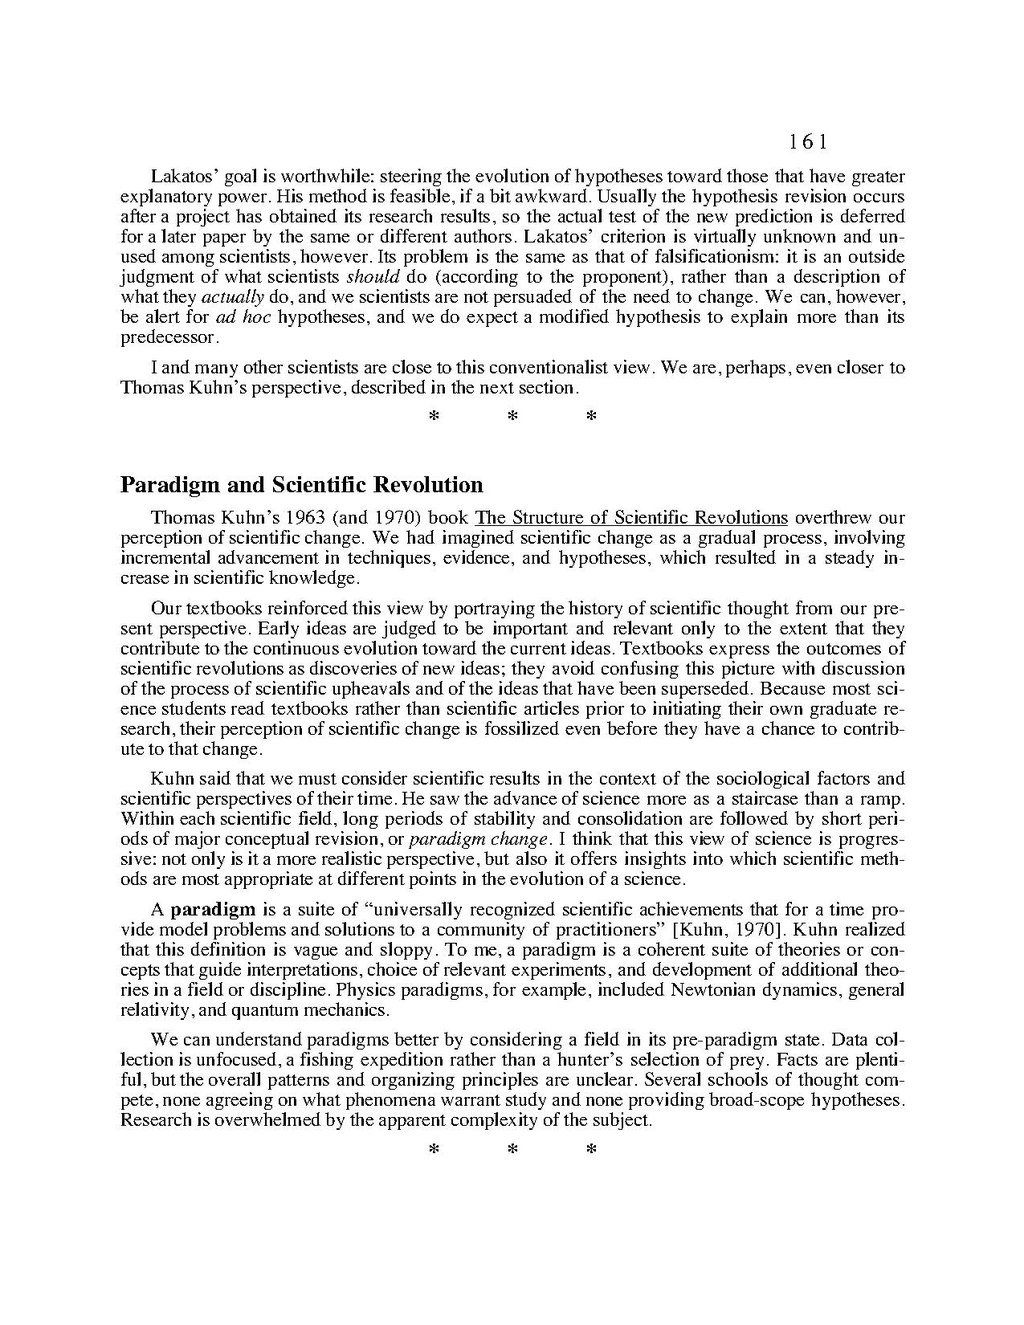 005 Research Paper Hypothesis In Pdf Page164 1024px Sm All Cc Sensational Testing Example Of Null Full